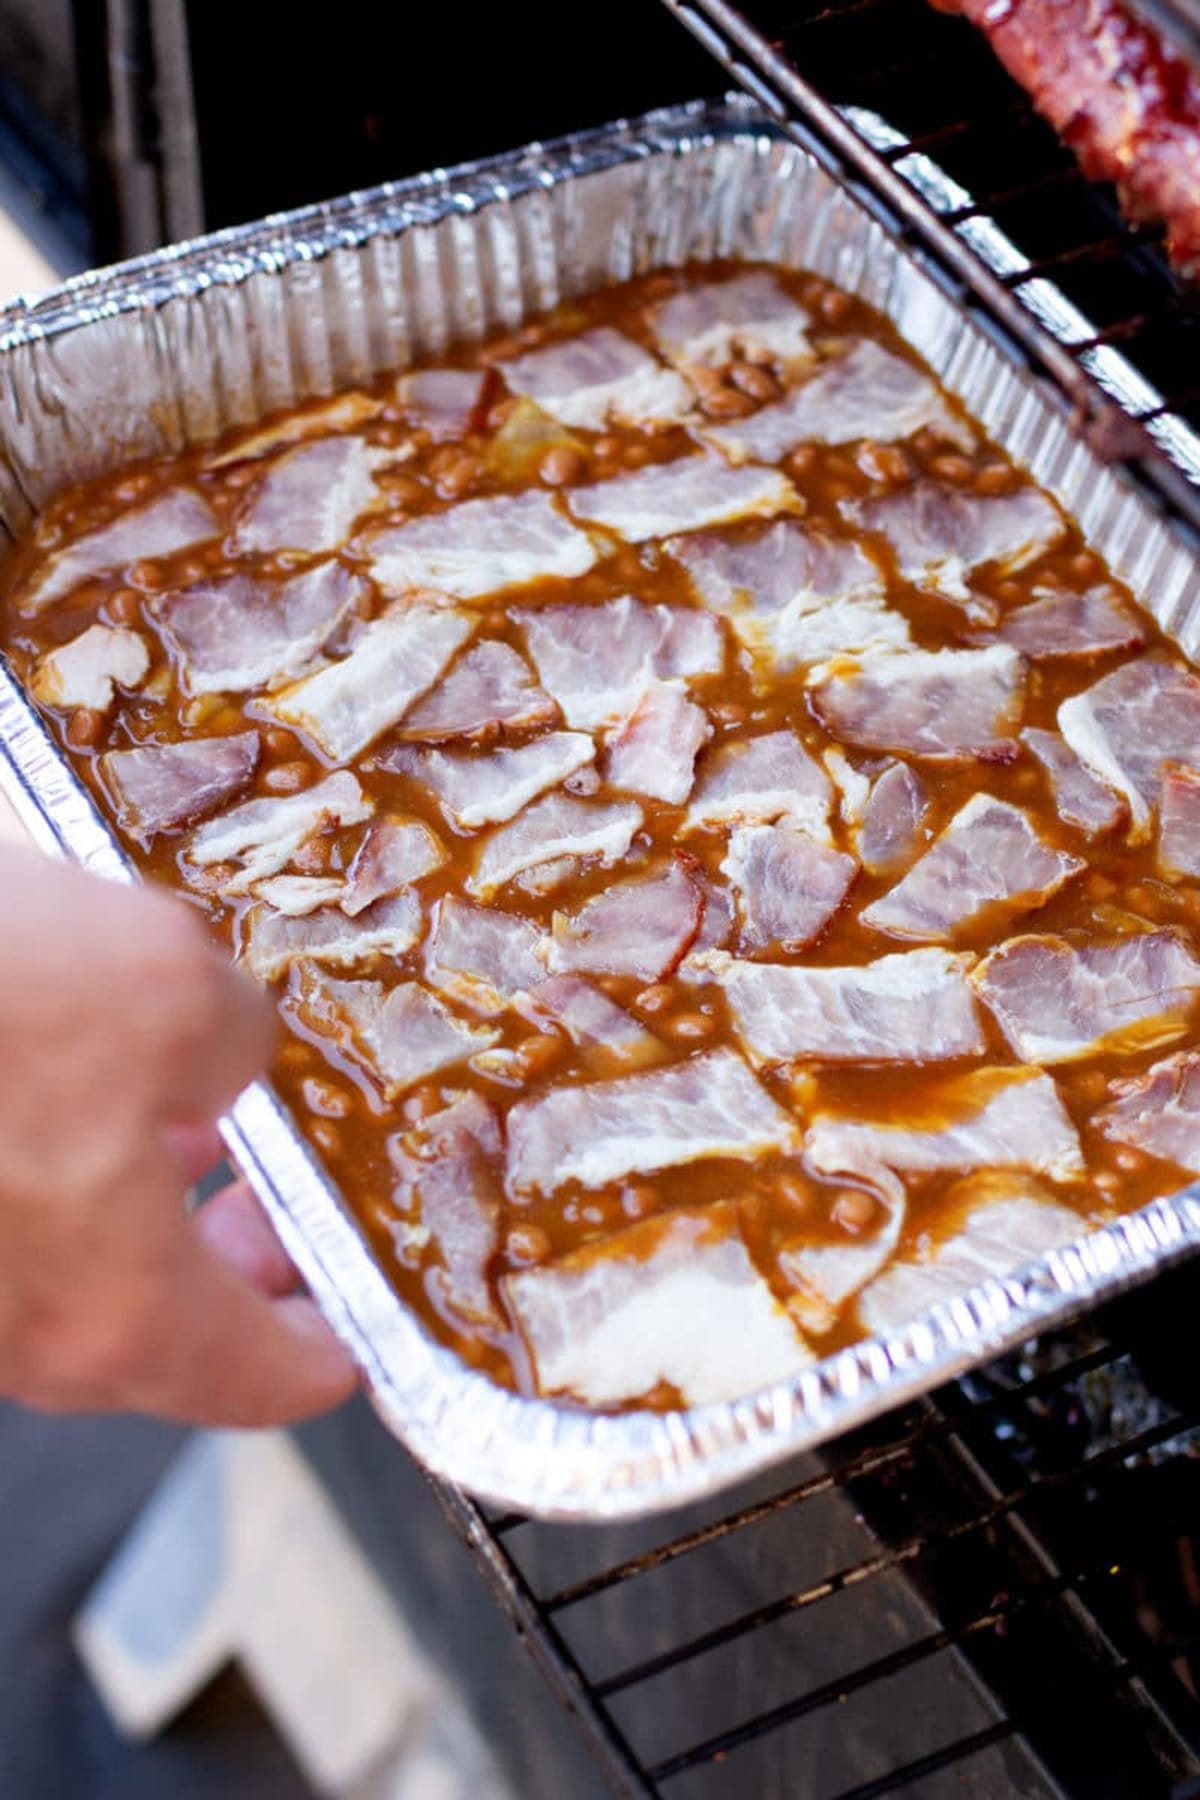 Baked beans in an aluminum pan being placed in a smoker.